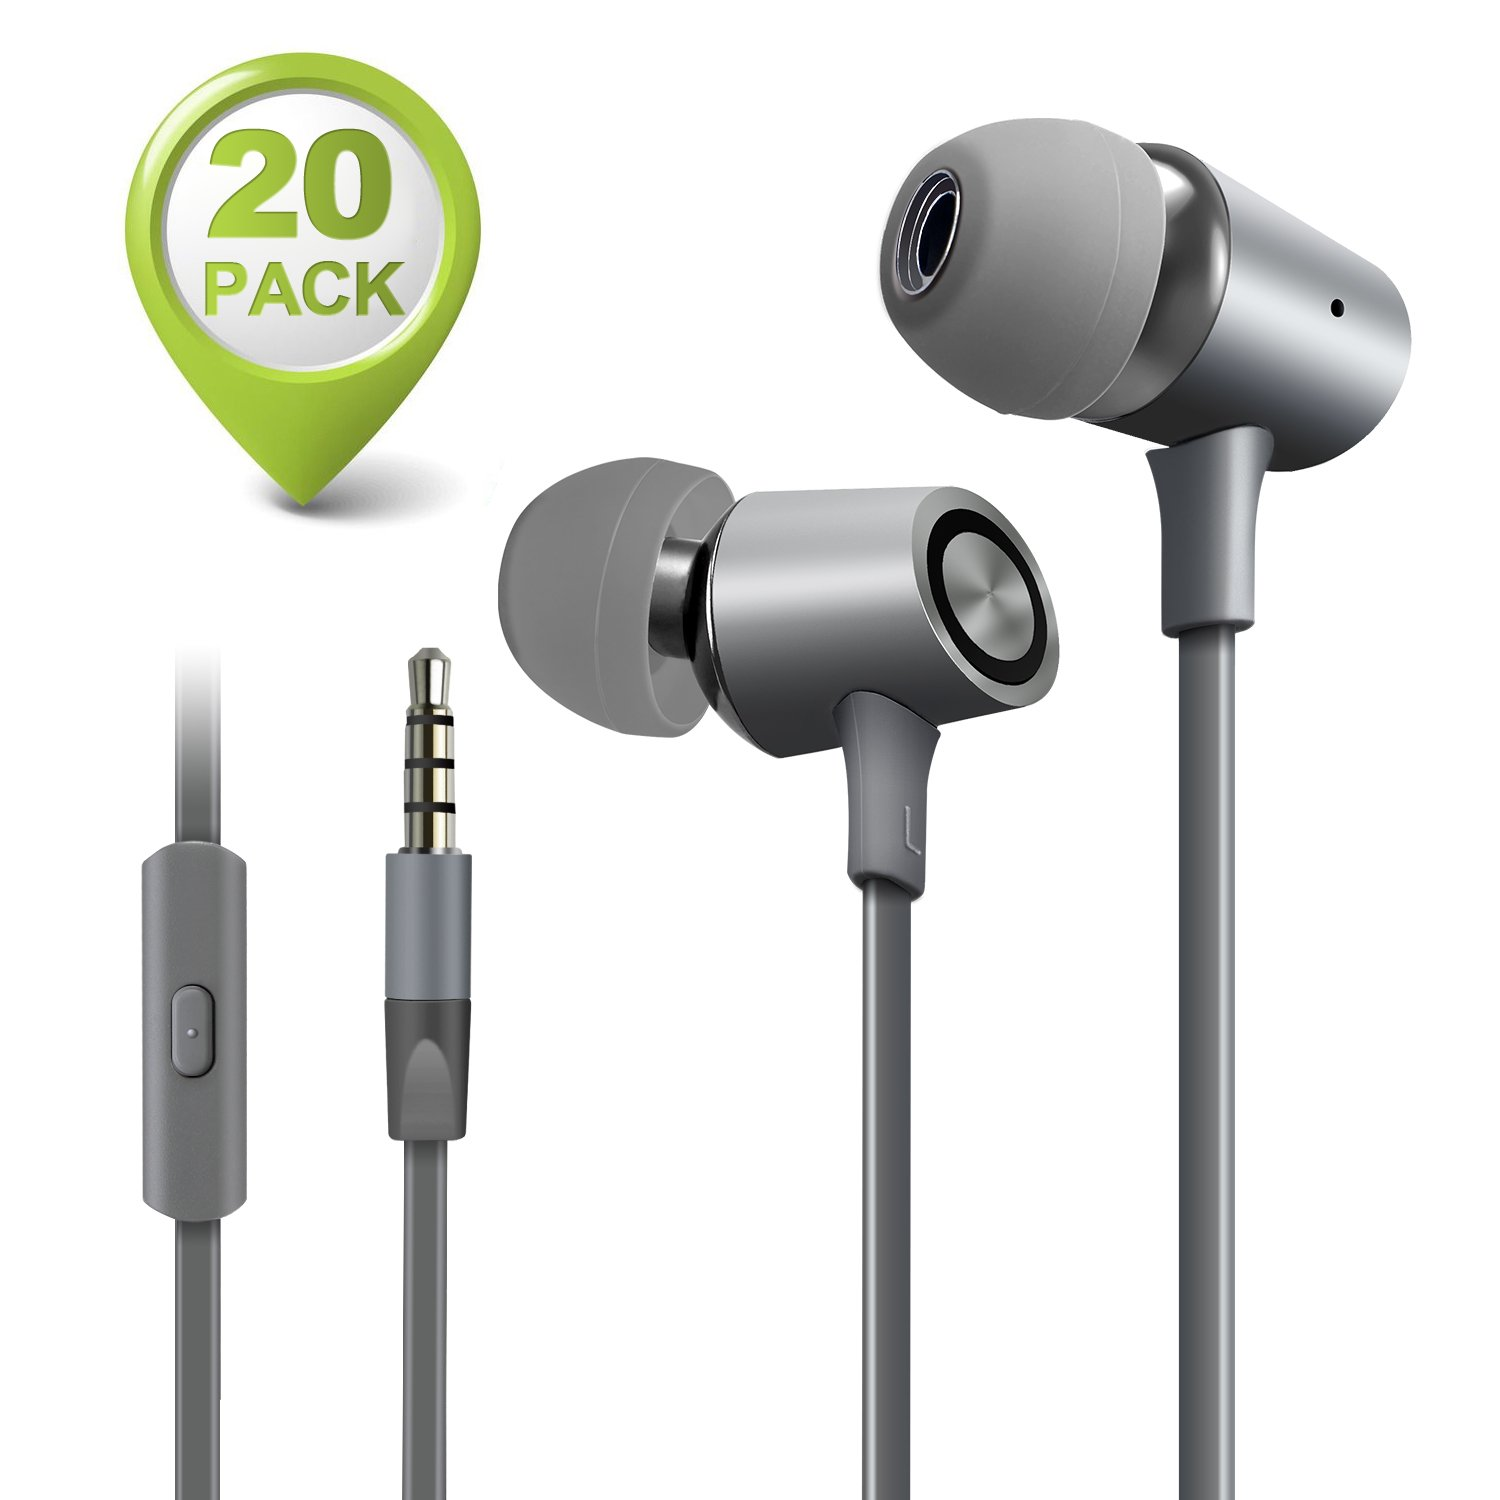 M-Better In-ear Earphones, Wired Earphones Sound Isolating Headphones with Microphone 3.5mm Sports Headphone Earphones for Apple Android and Other Devices (20 Pack gray)